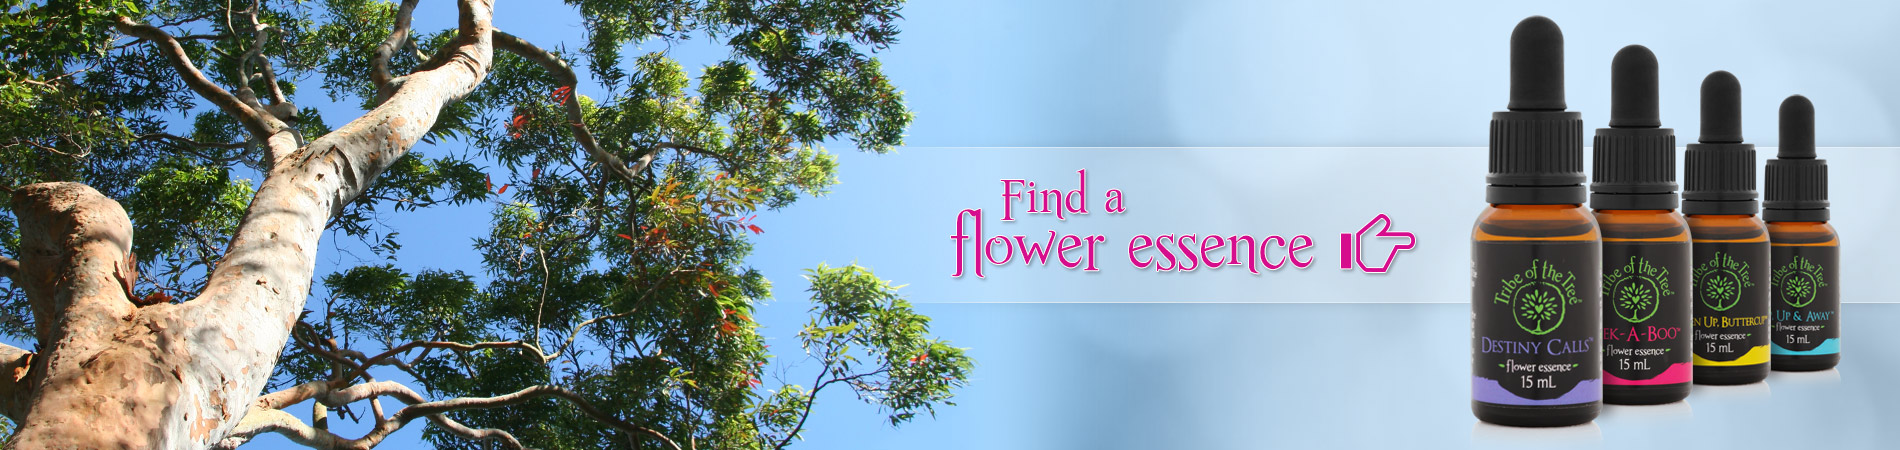 Find a flower essence from Tribe of the Tree's range of flower remedies for stress, shock, anxiety, confidence